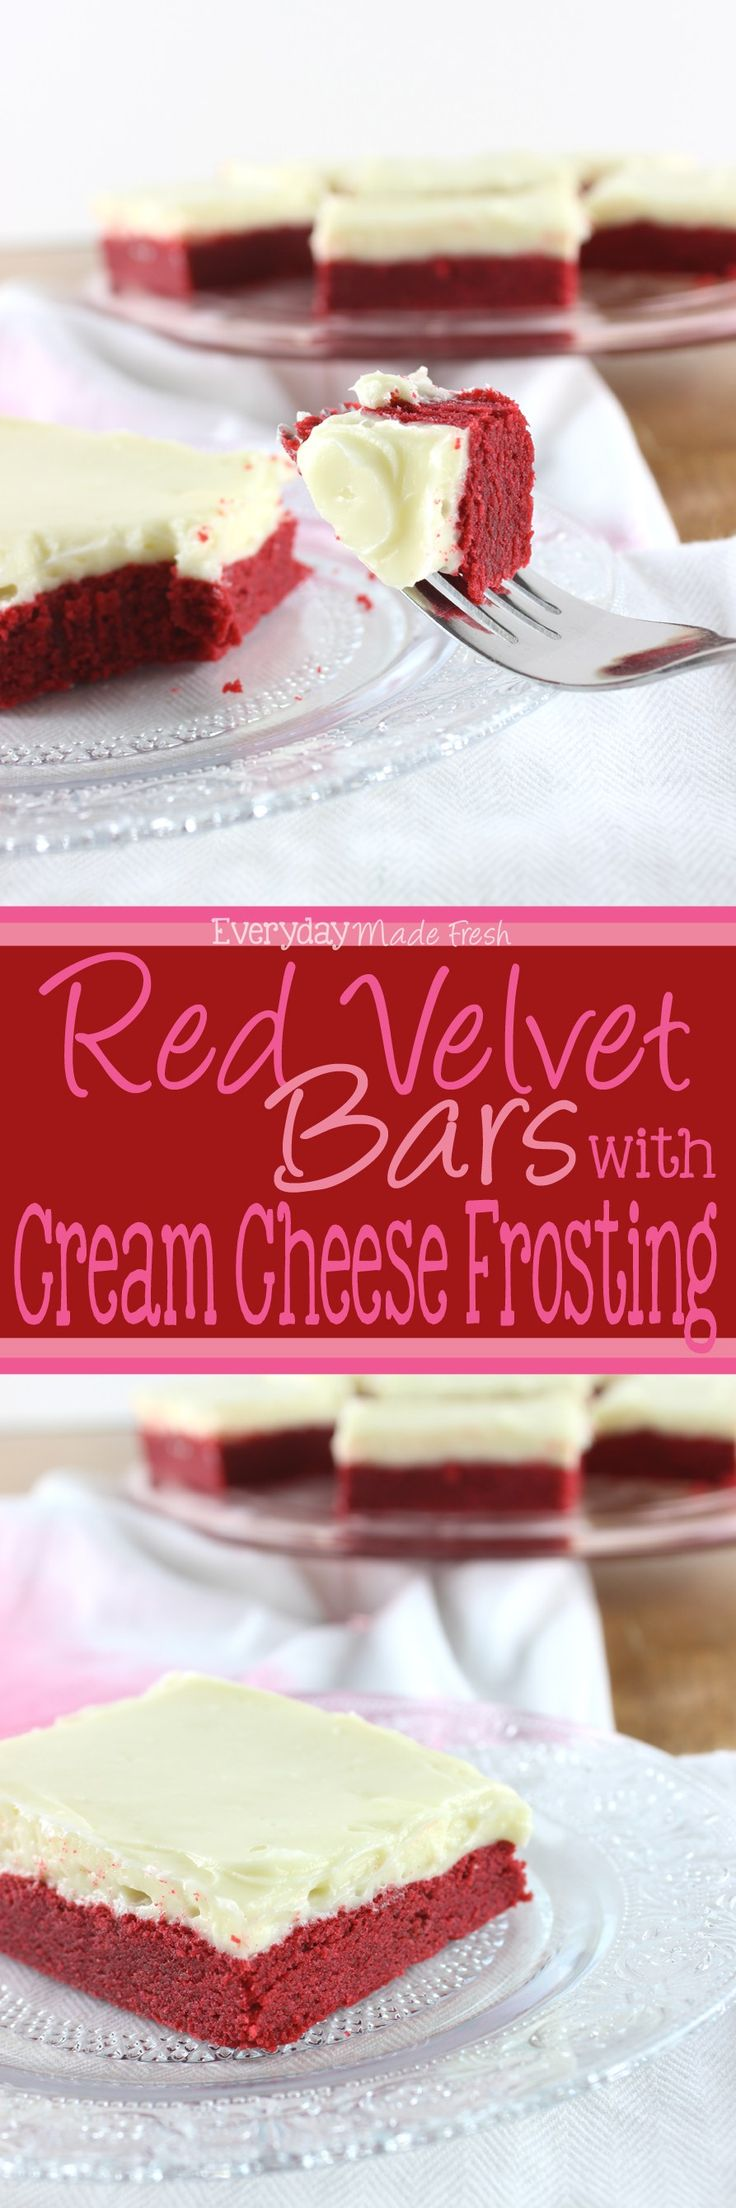 These Red Velvet Bars with Cream Cheese Frosting h…Edit description